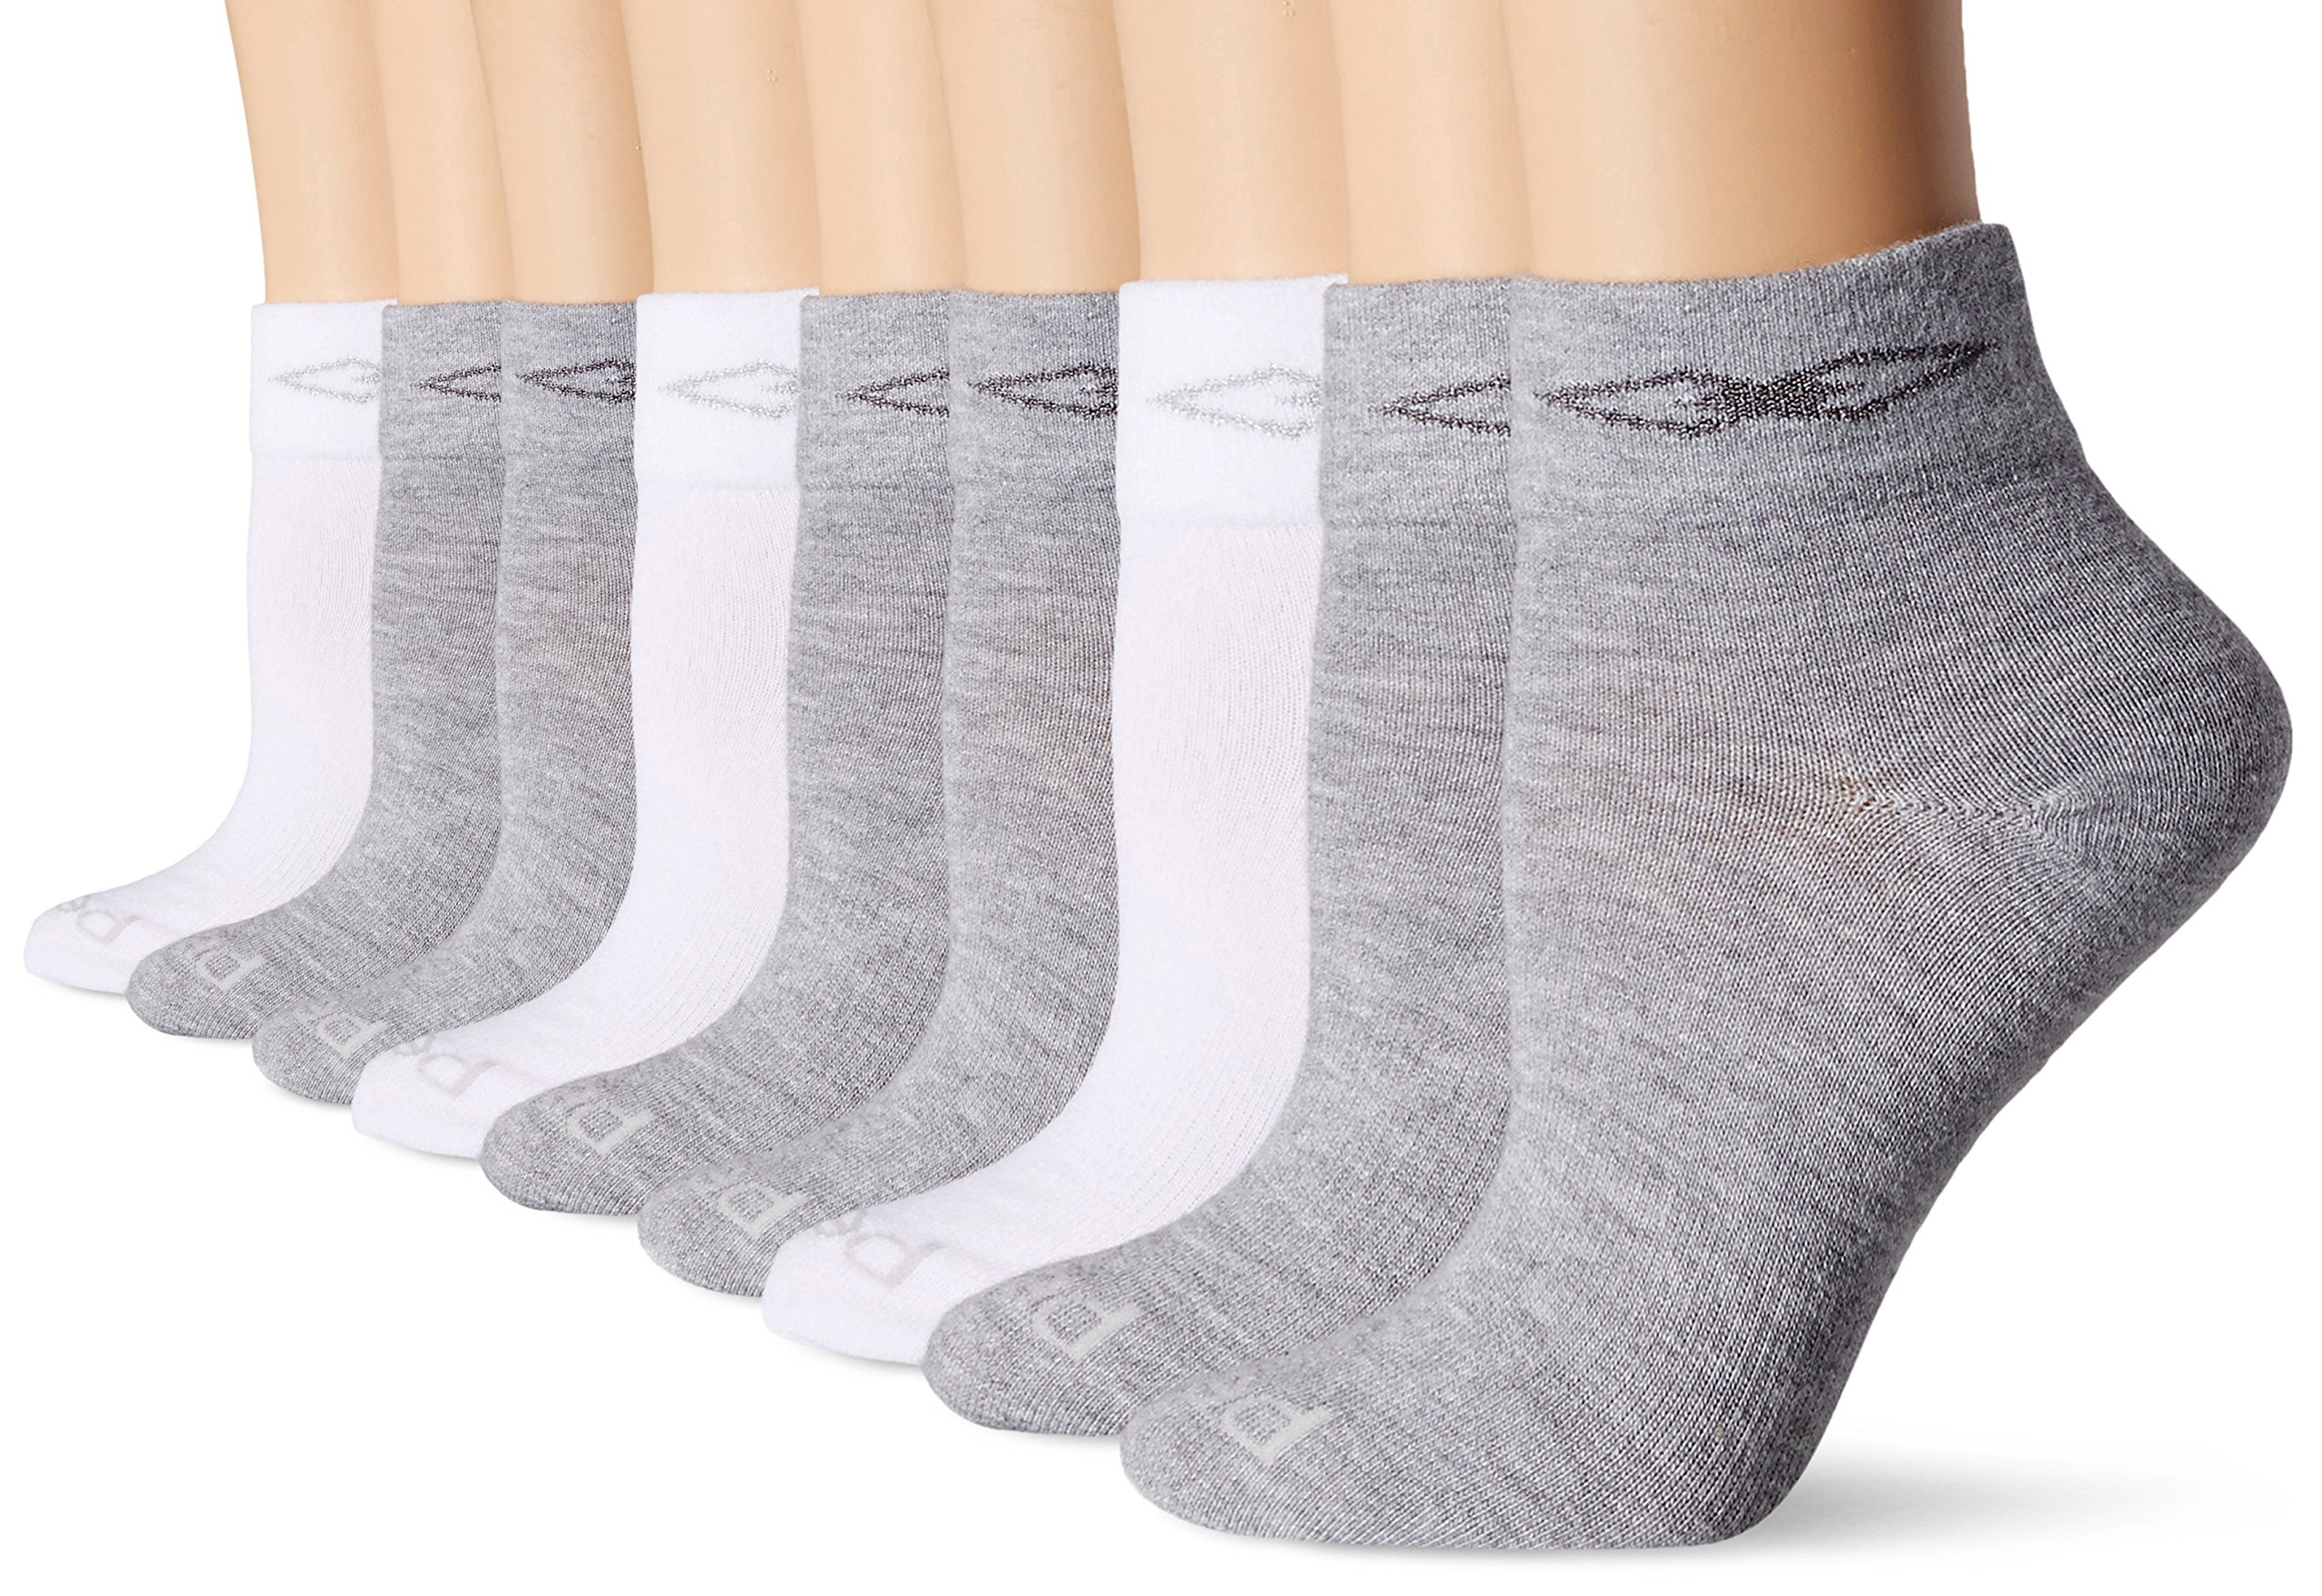 PEDS Women's Coolmax Anklet Sock with Comfort Top and Arch Support, White/Grey Heather, 5-10 (9 Pair Pack)